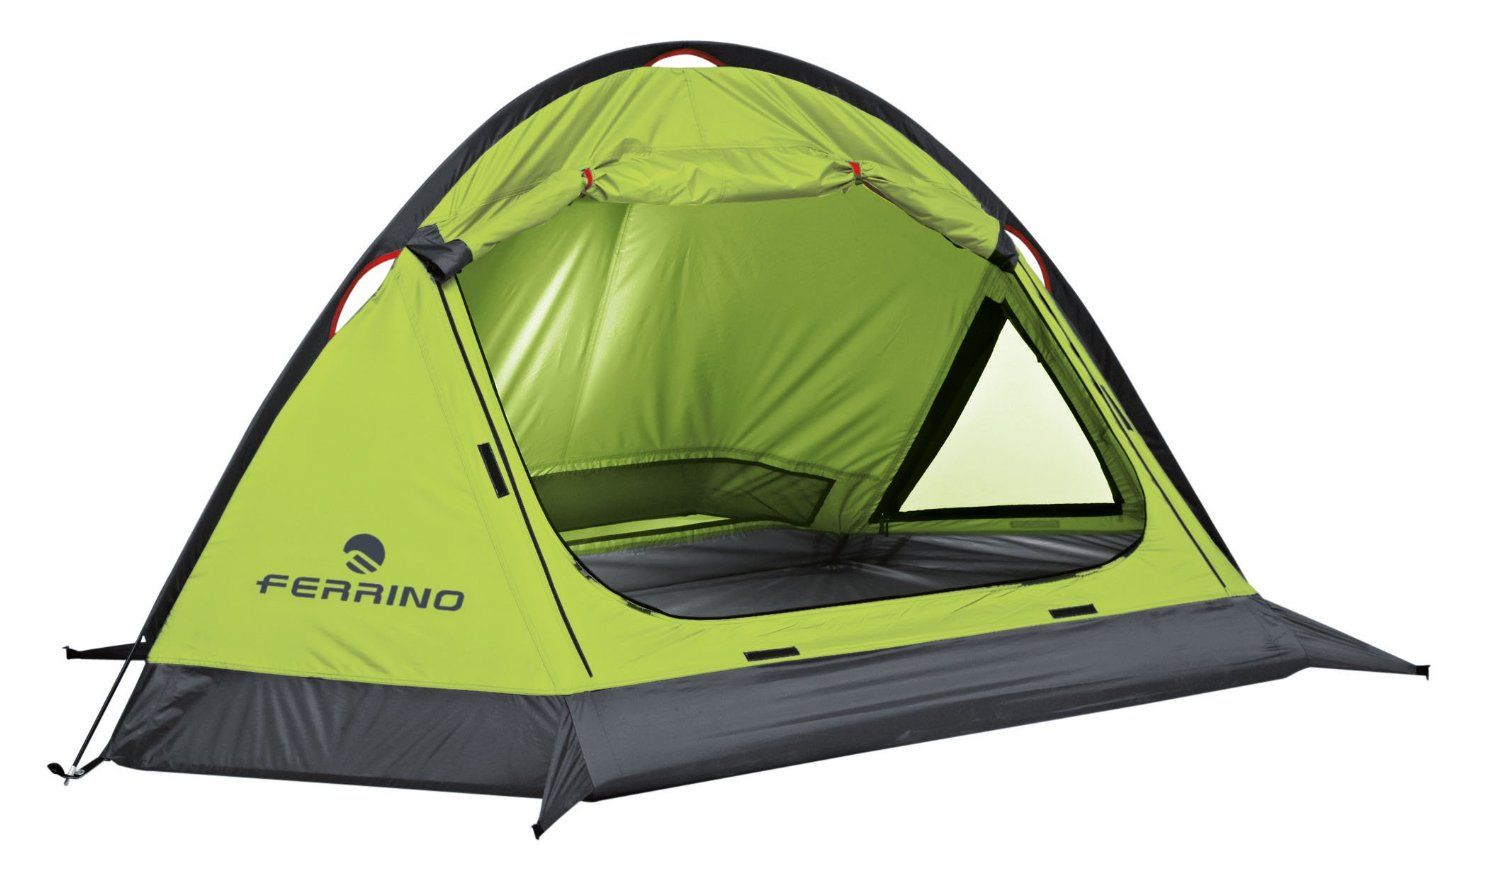 Ferrino MTB Especially for Cycle Touring – Green, 2 Persons by Ferrino